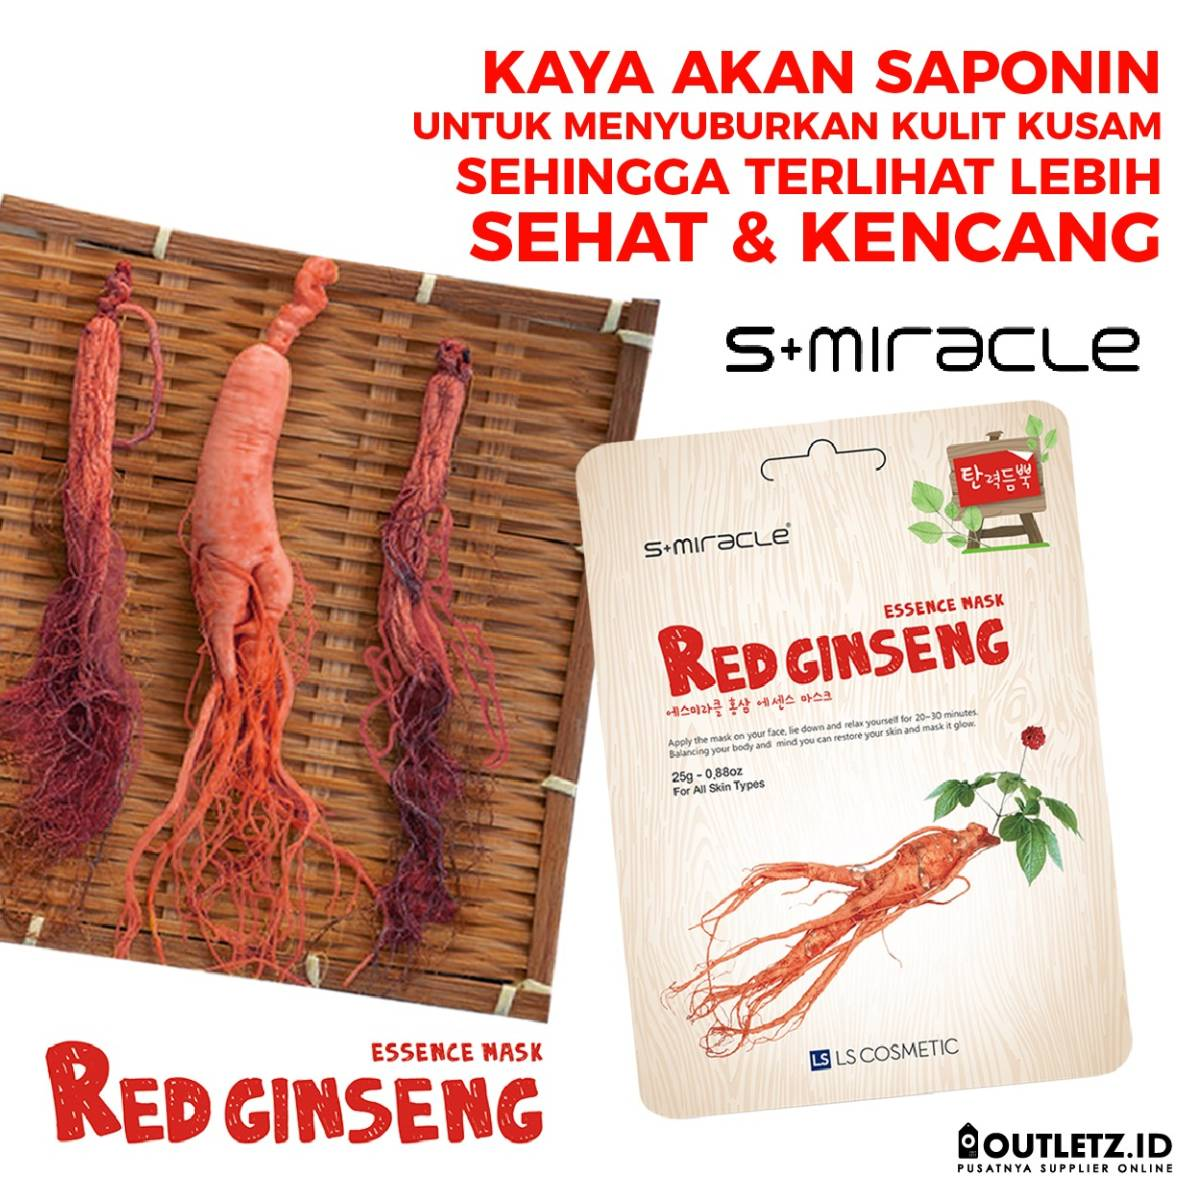 Masker Wajah Korea Red Gingseng - S+miracle Red Ginseng Essence Mask